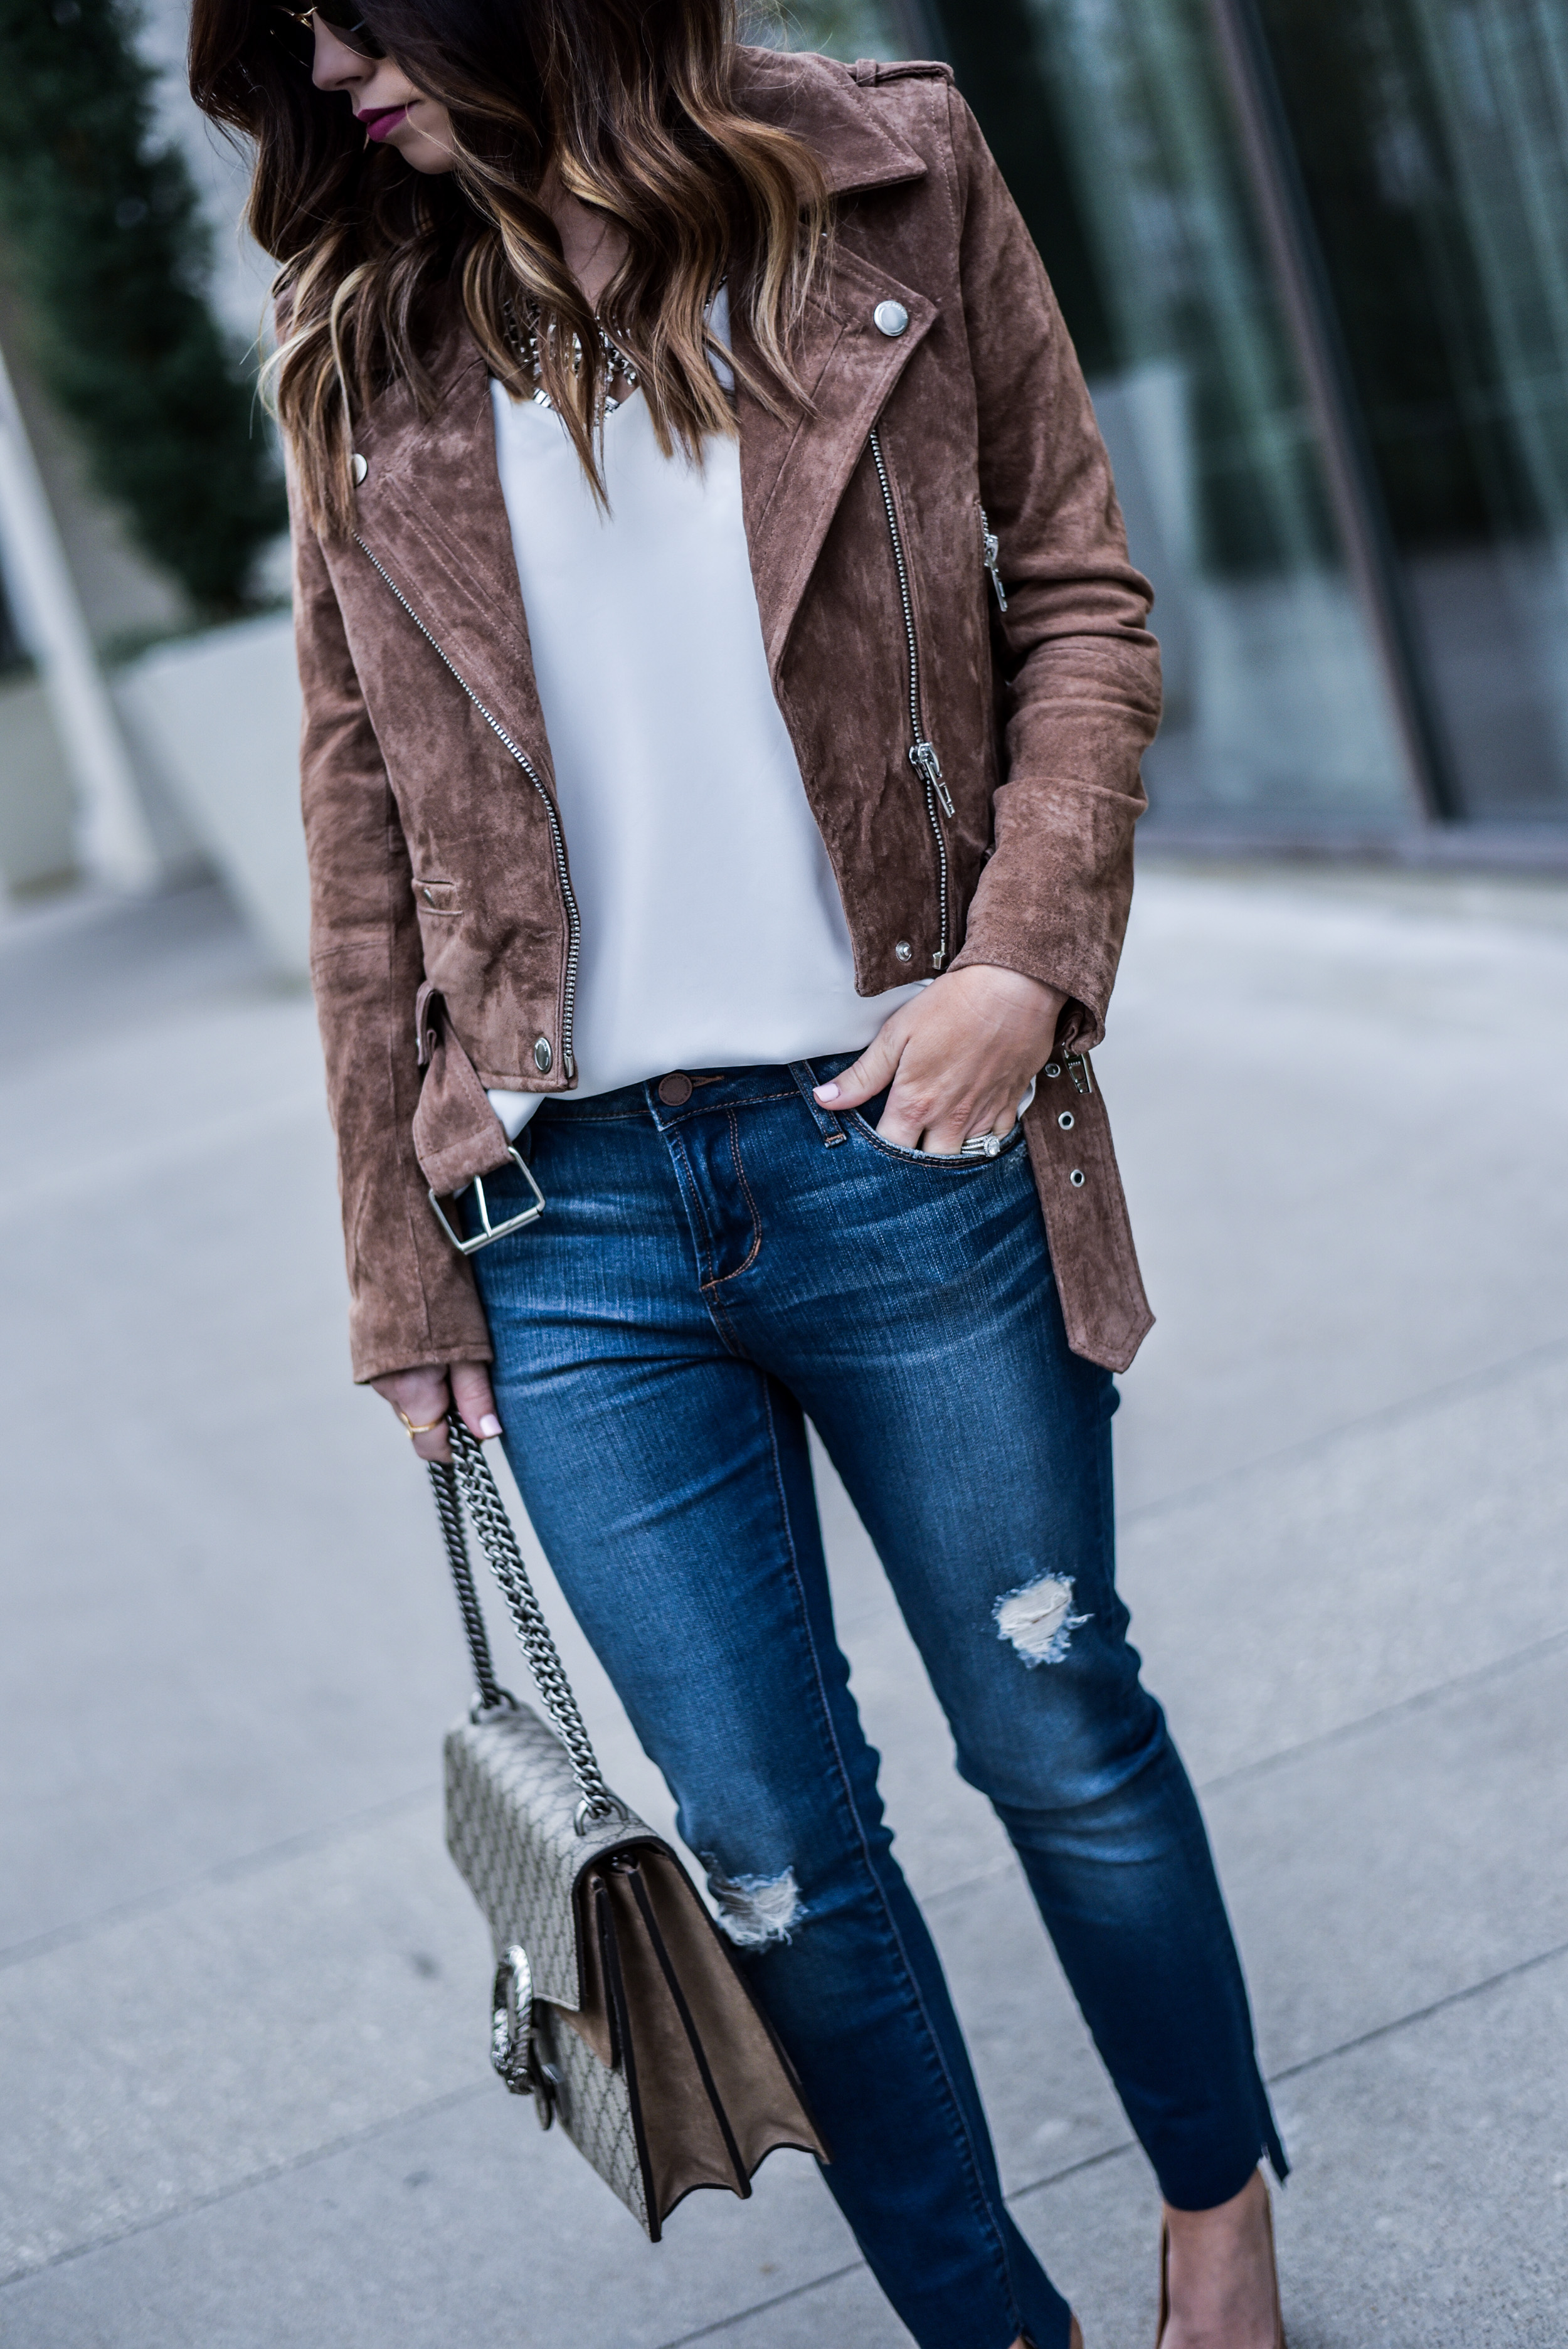 Style blogger Tiffany Jais of Flaunt and Center wearing a BLANKNYC suede moto jacket with Nordstrom jeans  